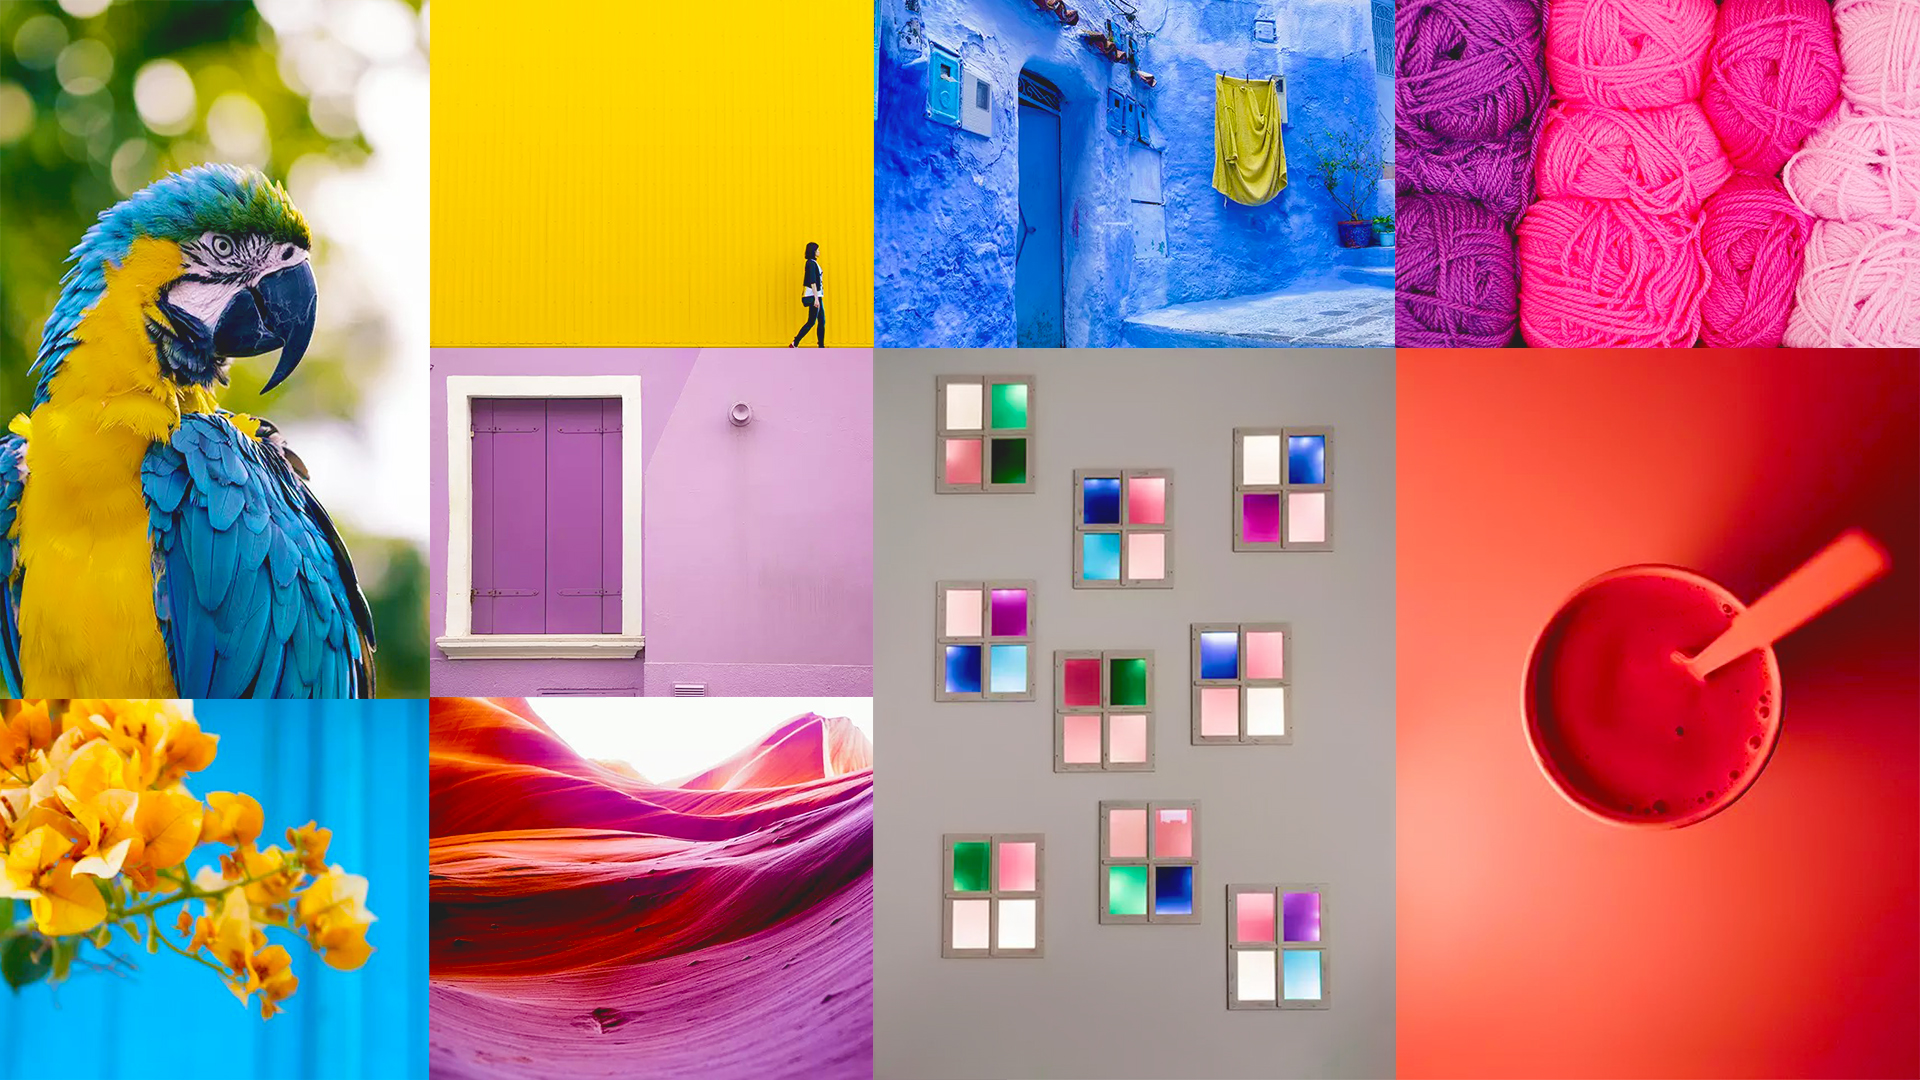 10 Tips For Using Vibrant Colors For Colorful Photography